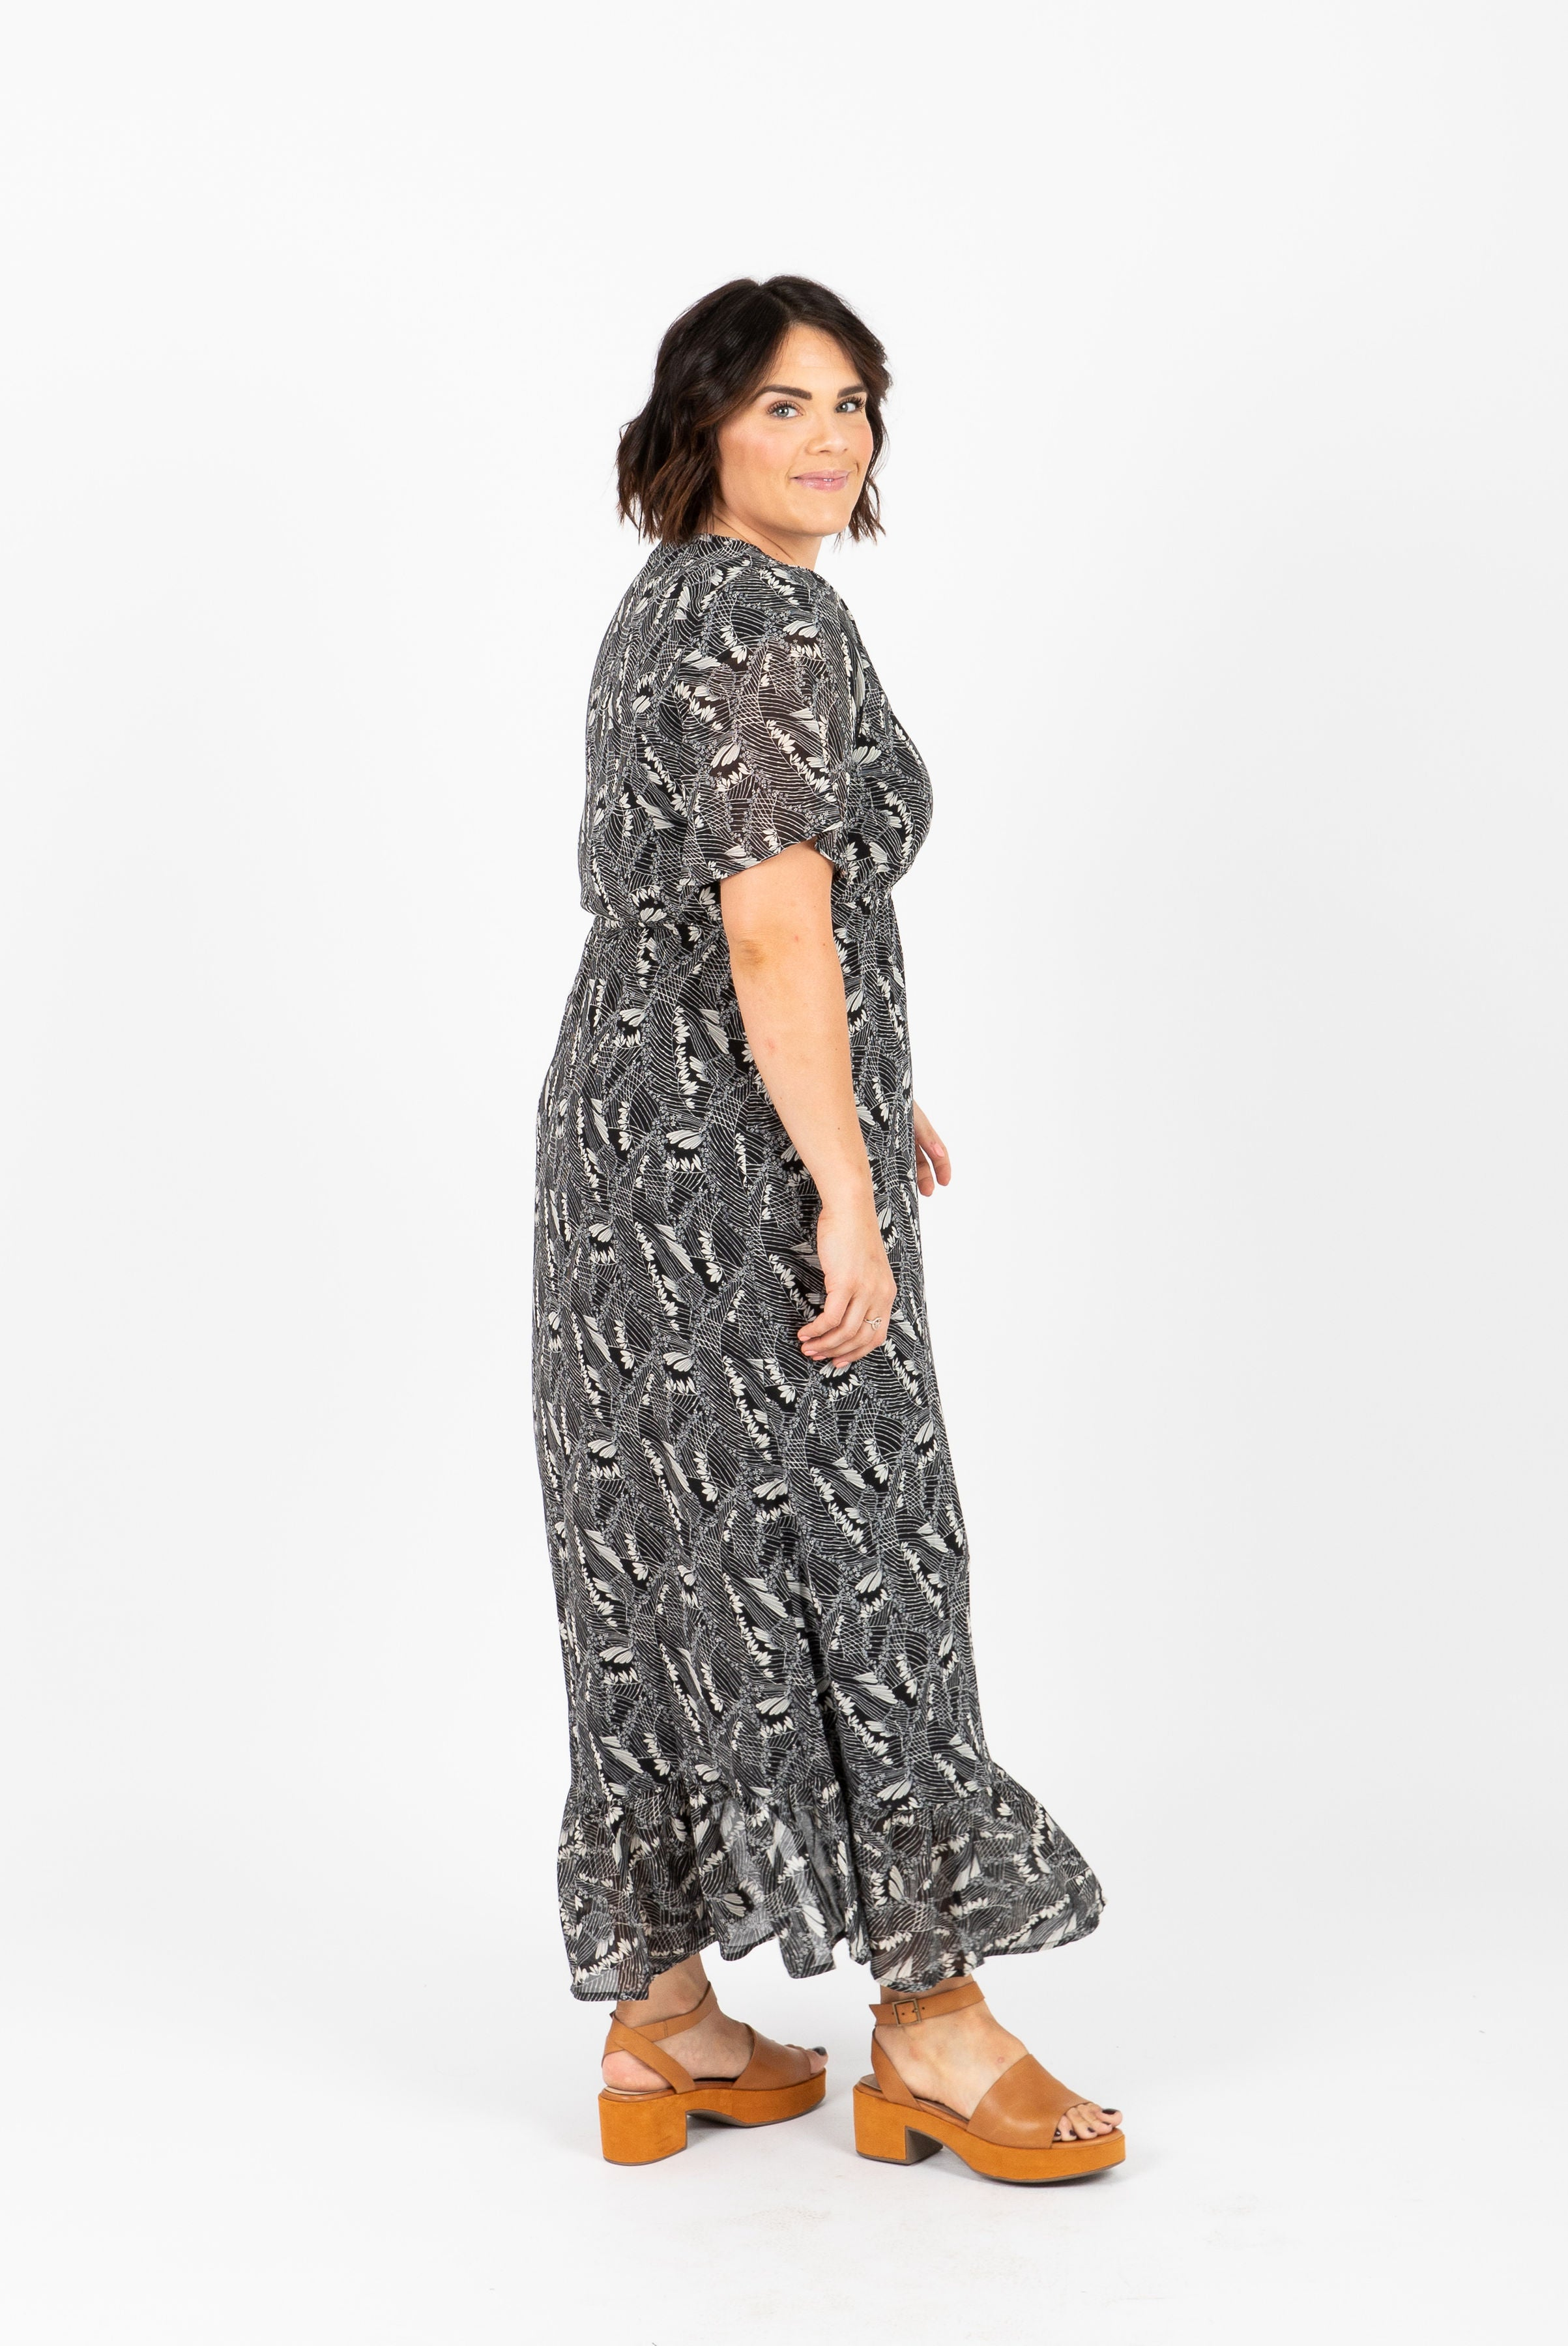 Piper & Scoot: The Crowned Floral Maxi Dress in Black